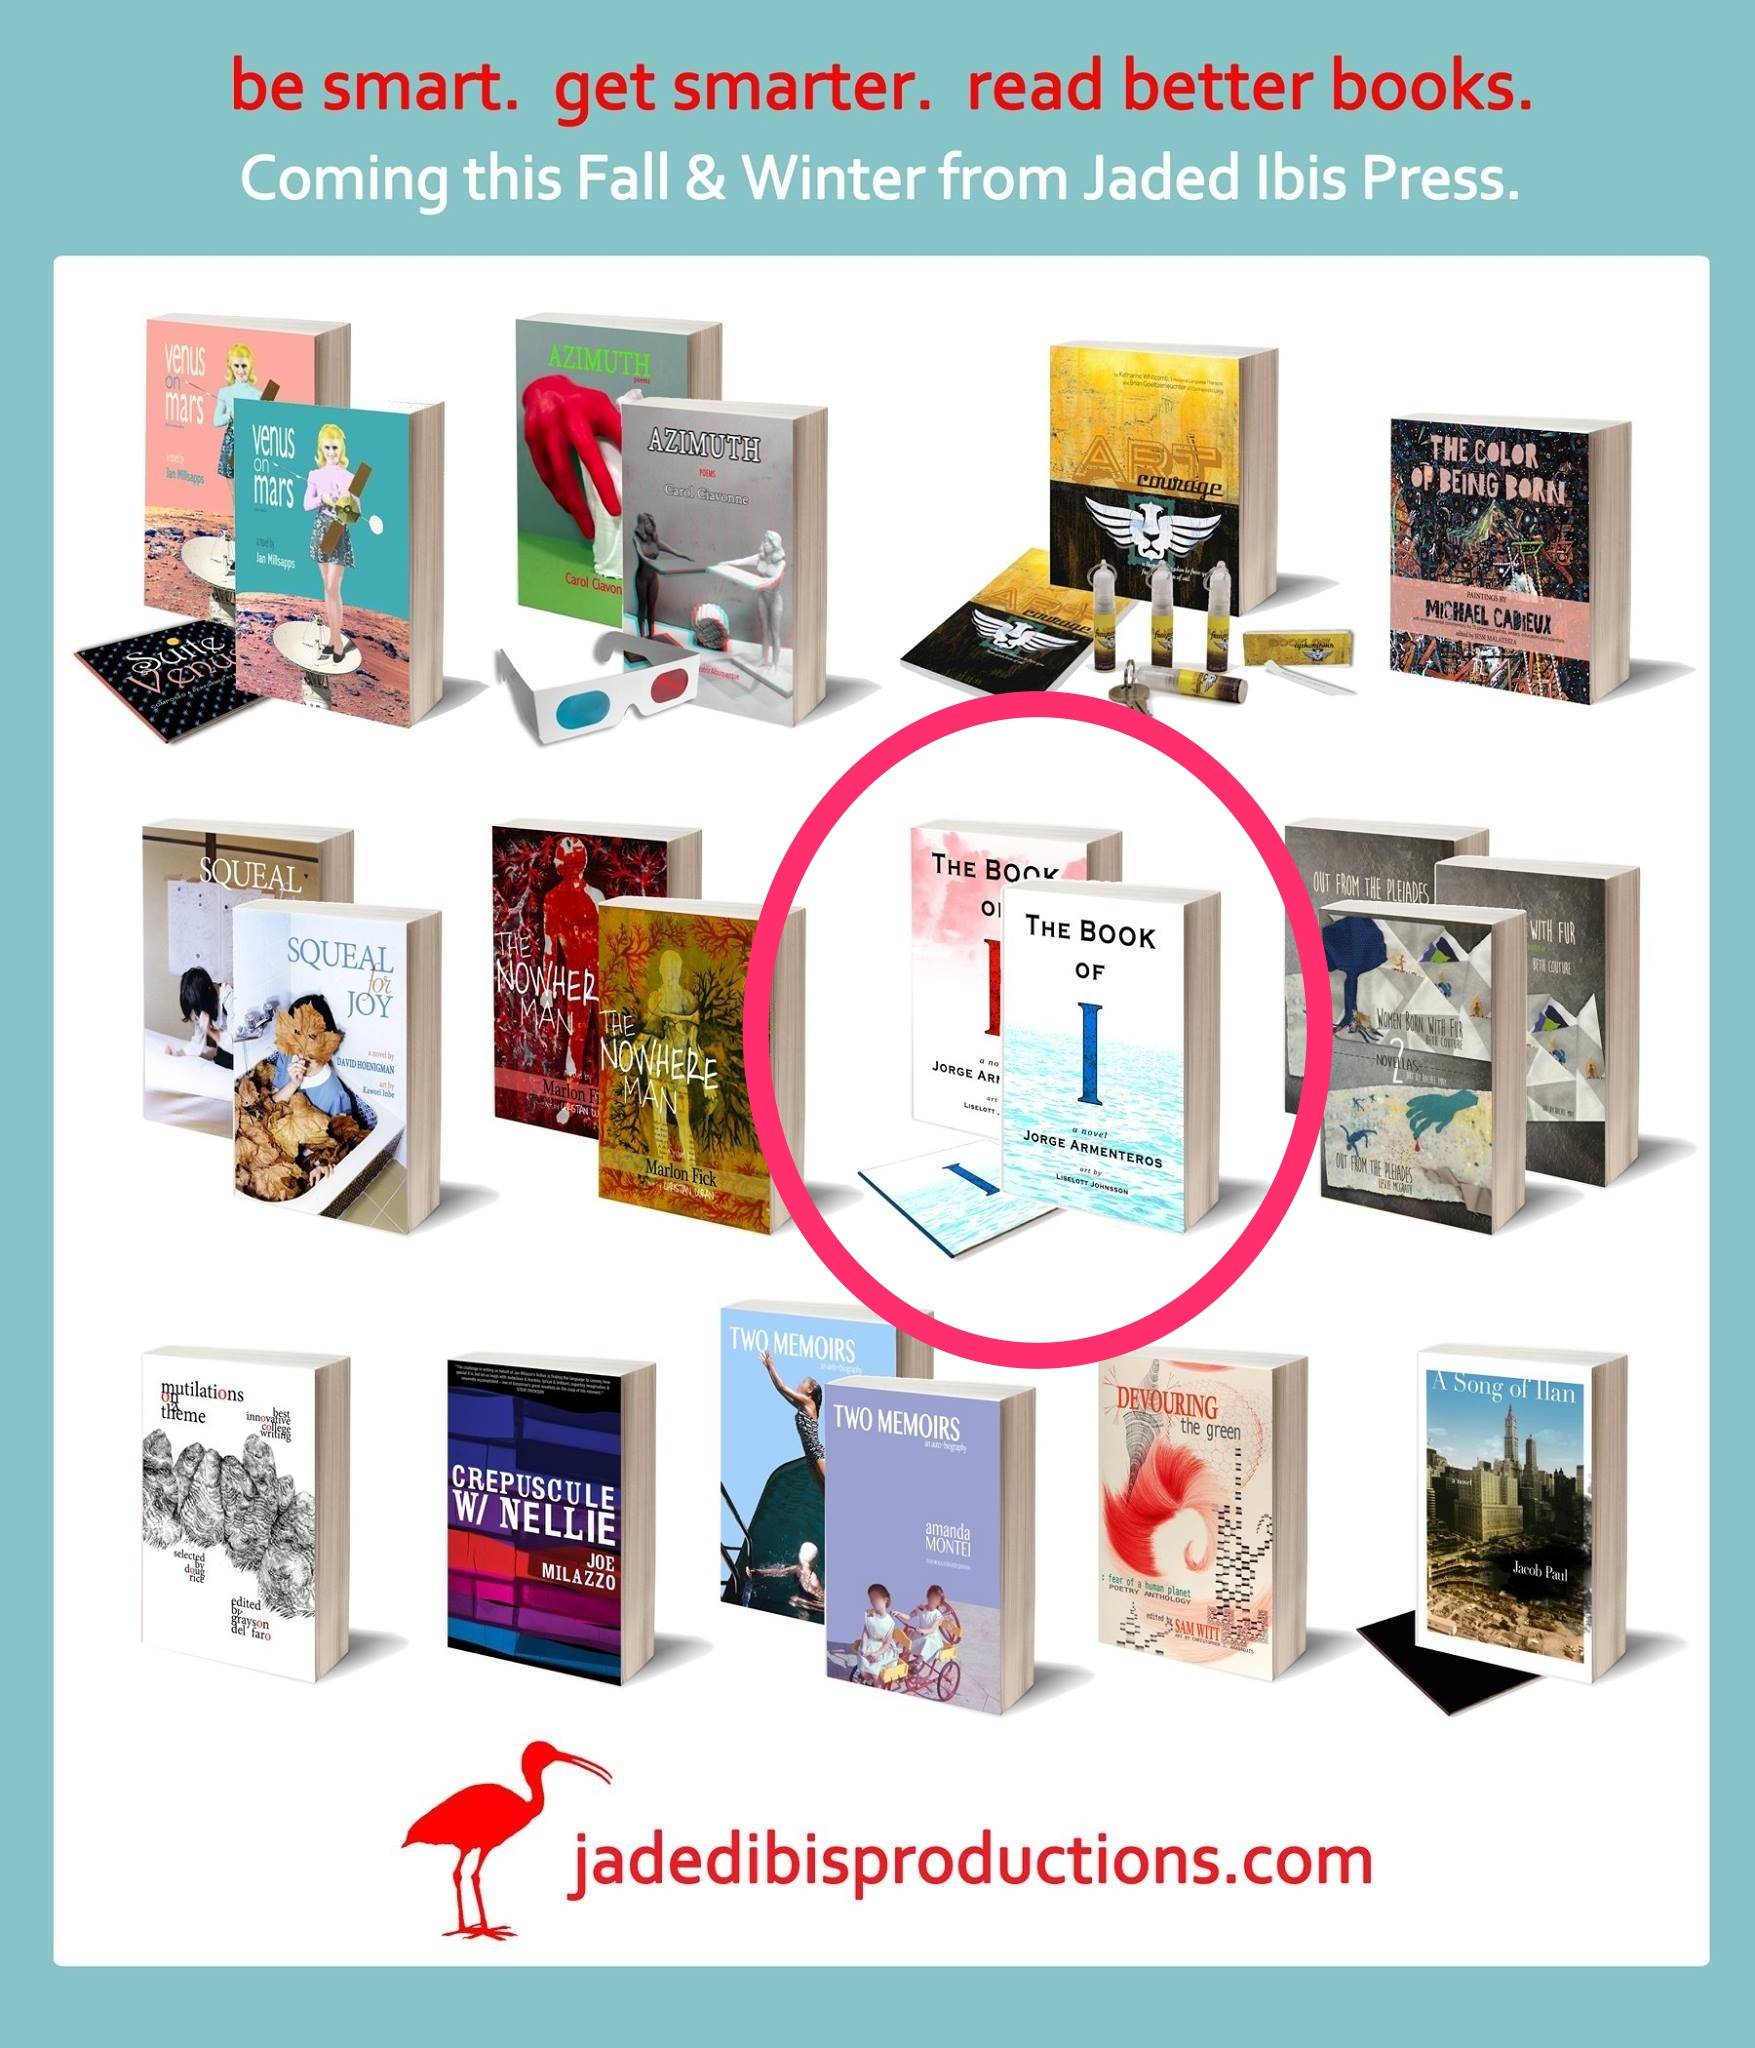 jaded_ibis_press_fall_2014_catalogue